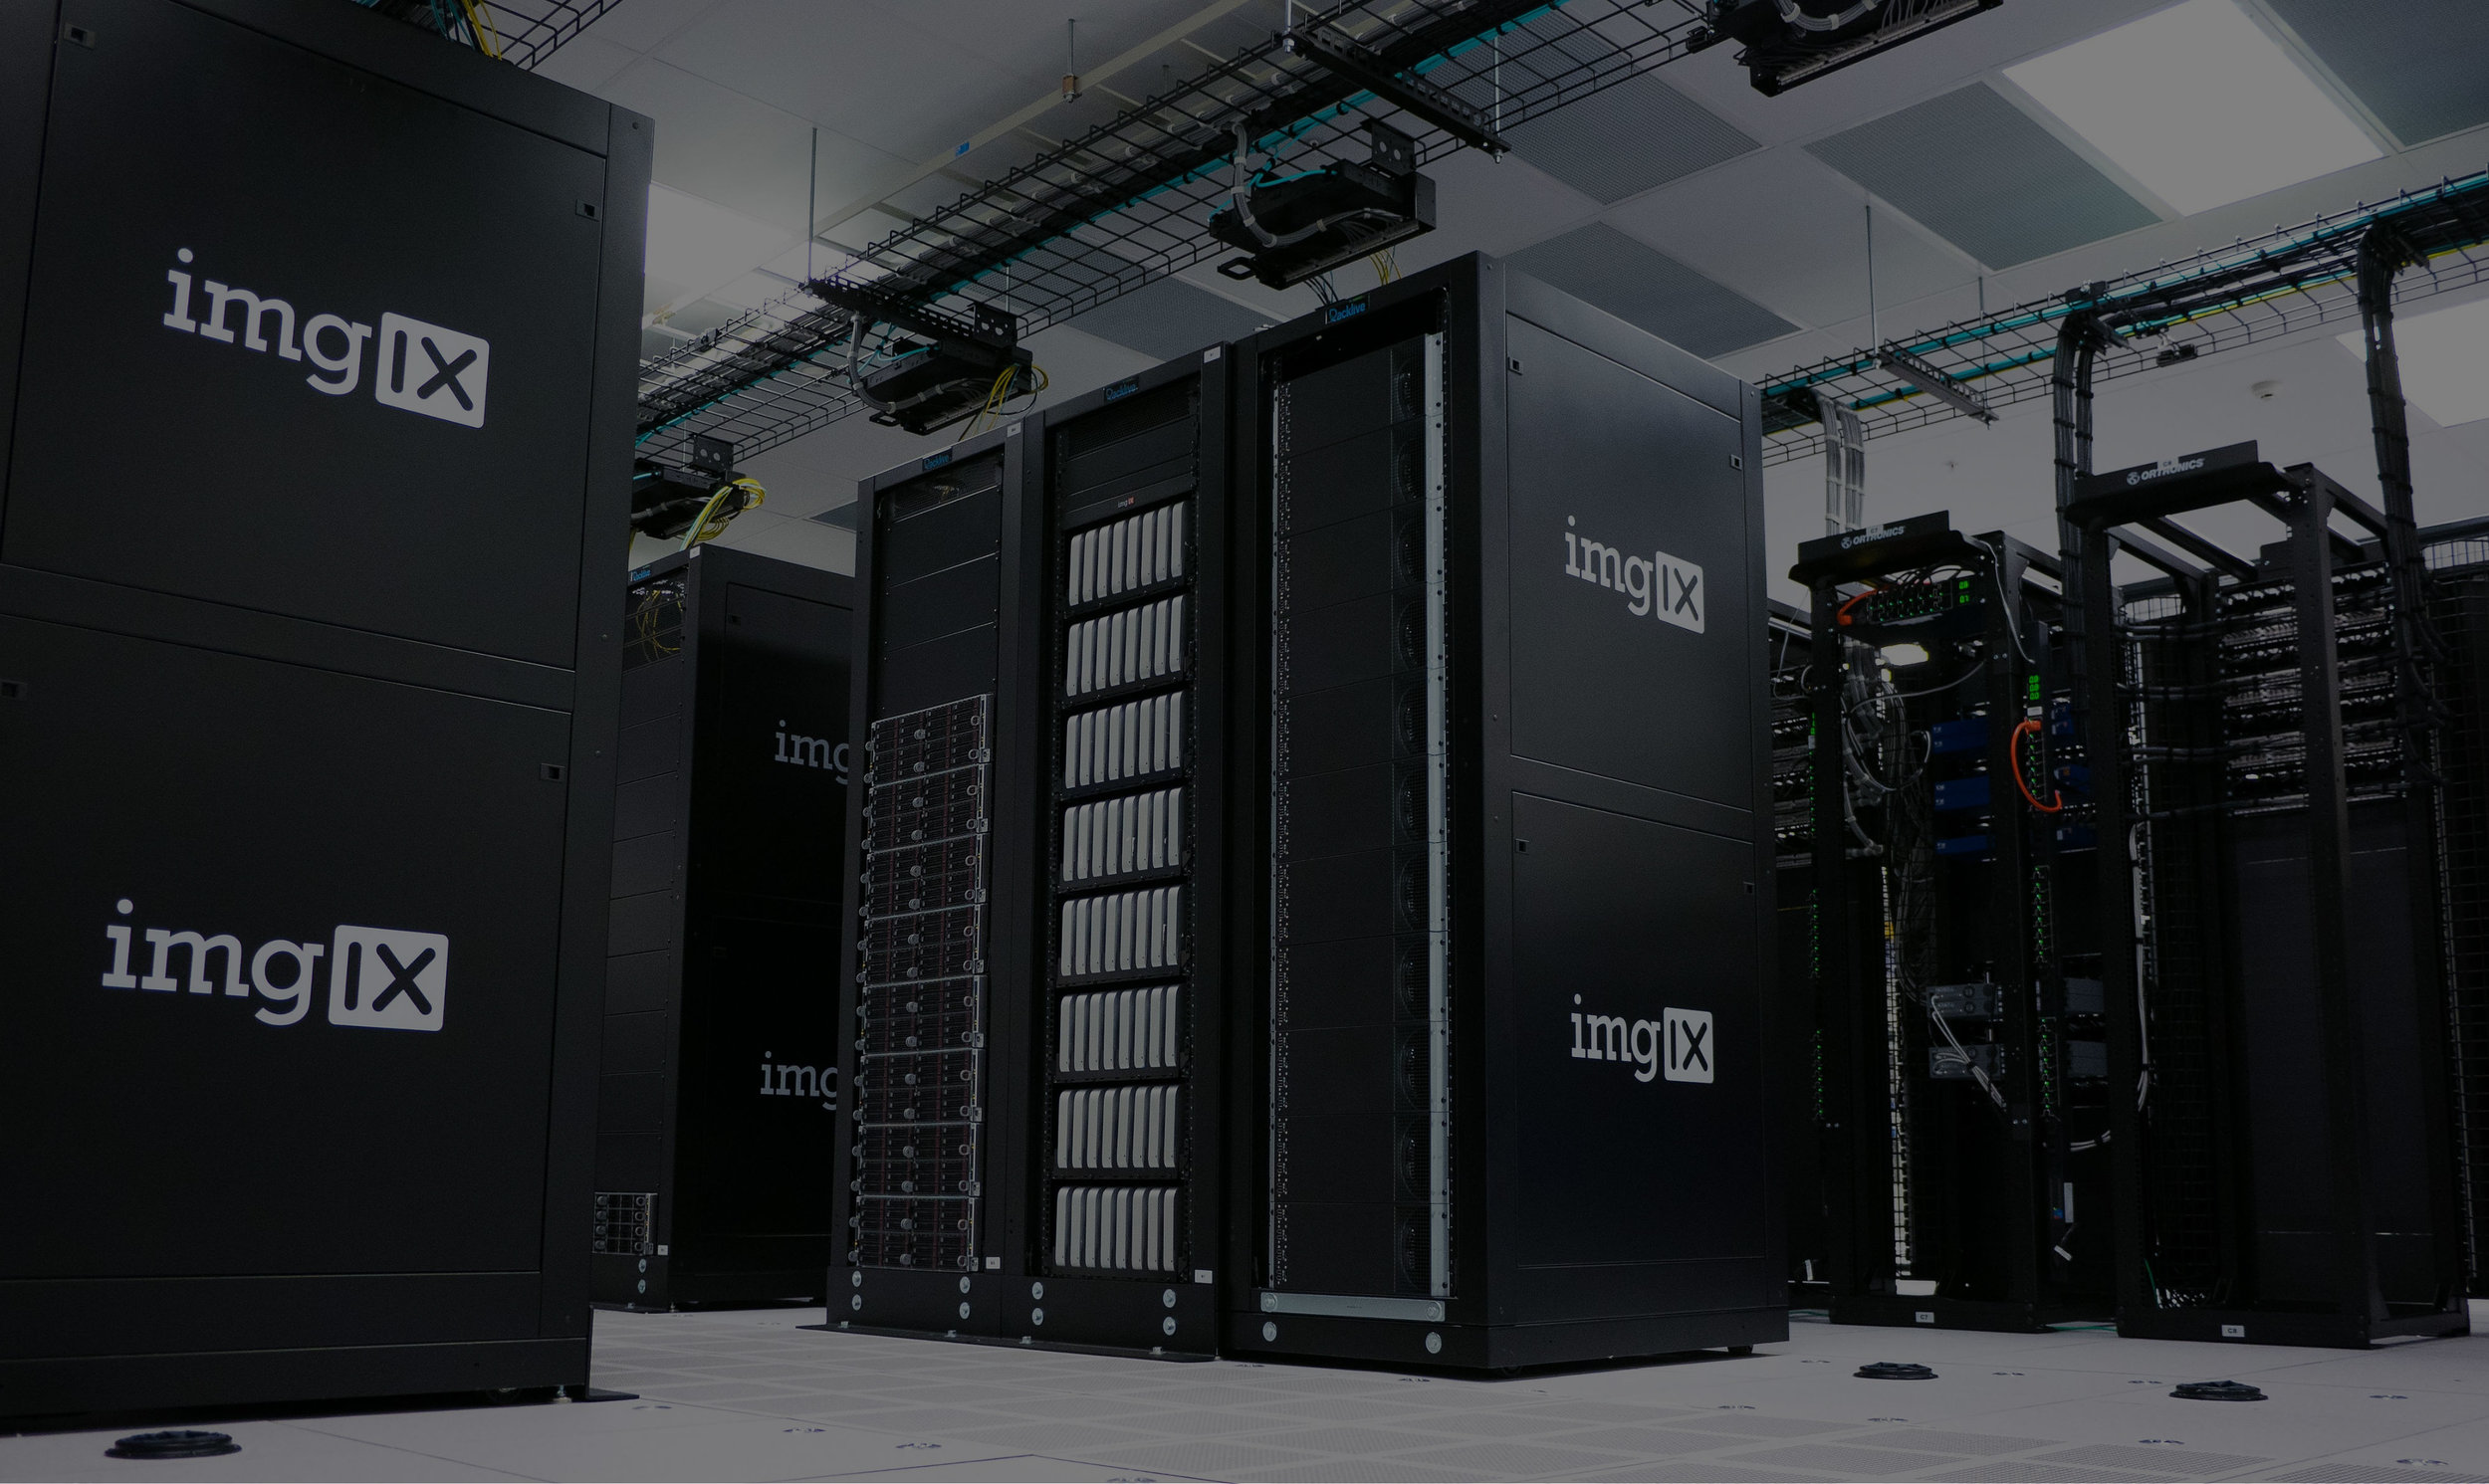 CLOUD STORAGEServices - State-of-the-art off-site storage solutions for your data needs.